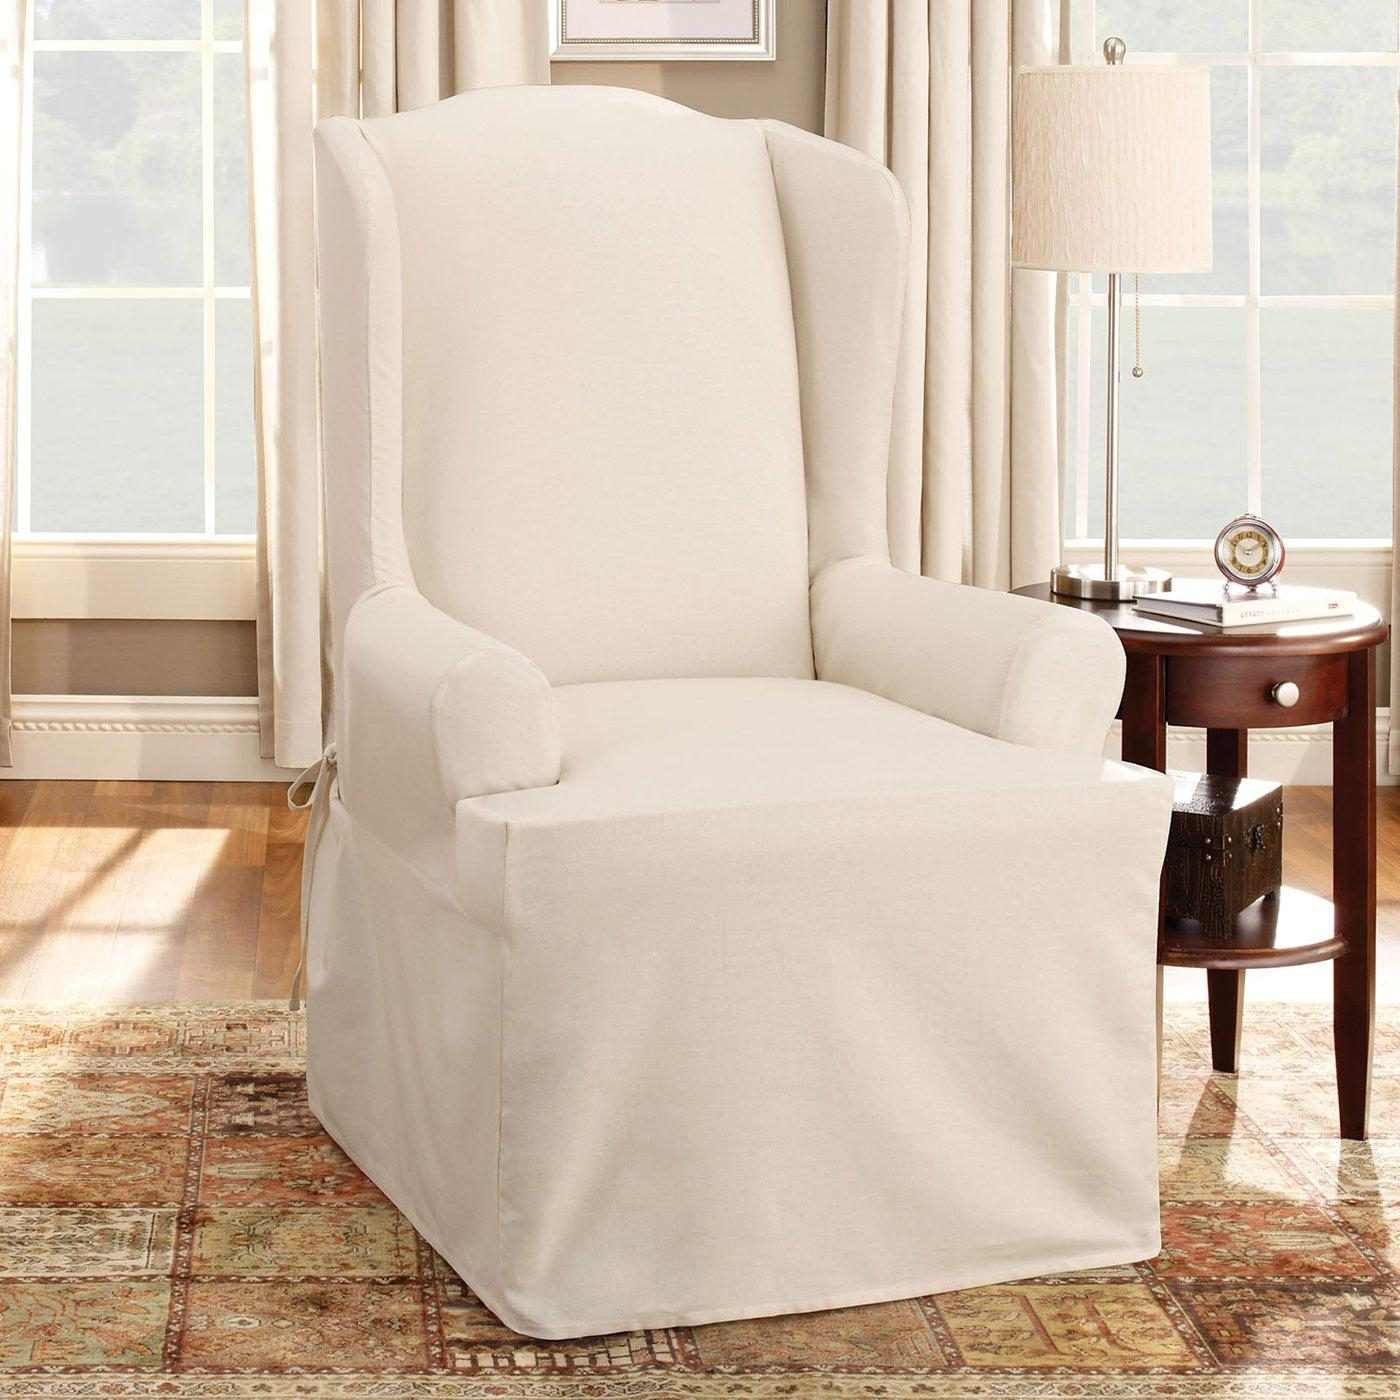 ▻ Sofa : 23 Luxury Wingback Charir Slipcover Design With Matching Intended For Sofa And Chair Slipcovers (Image 1 of 20)